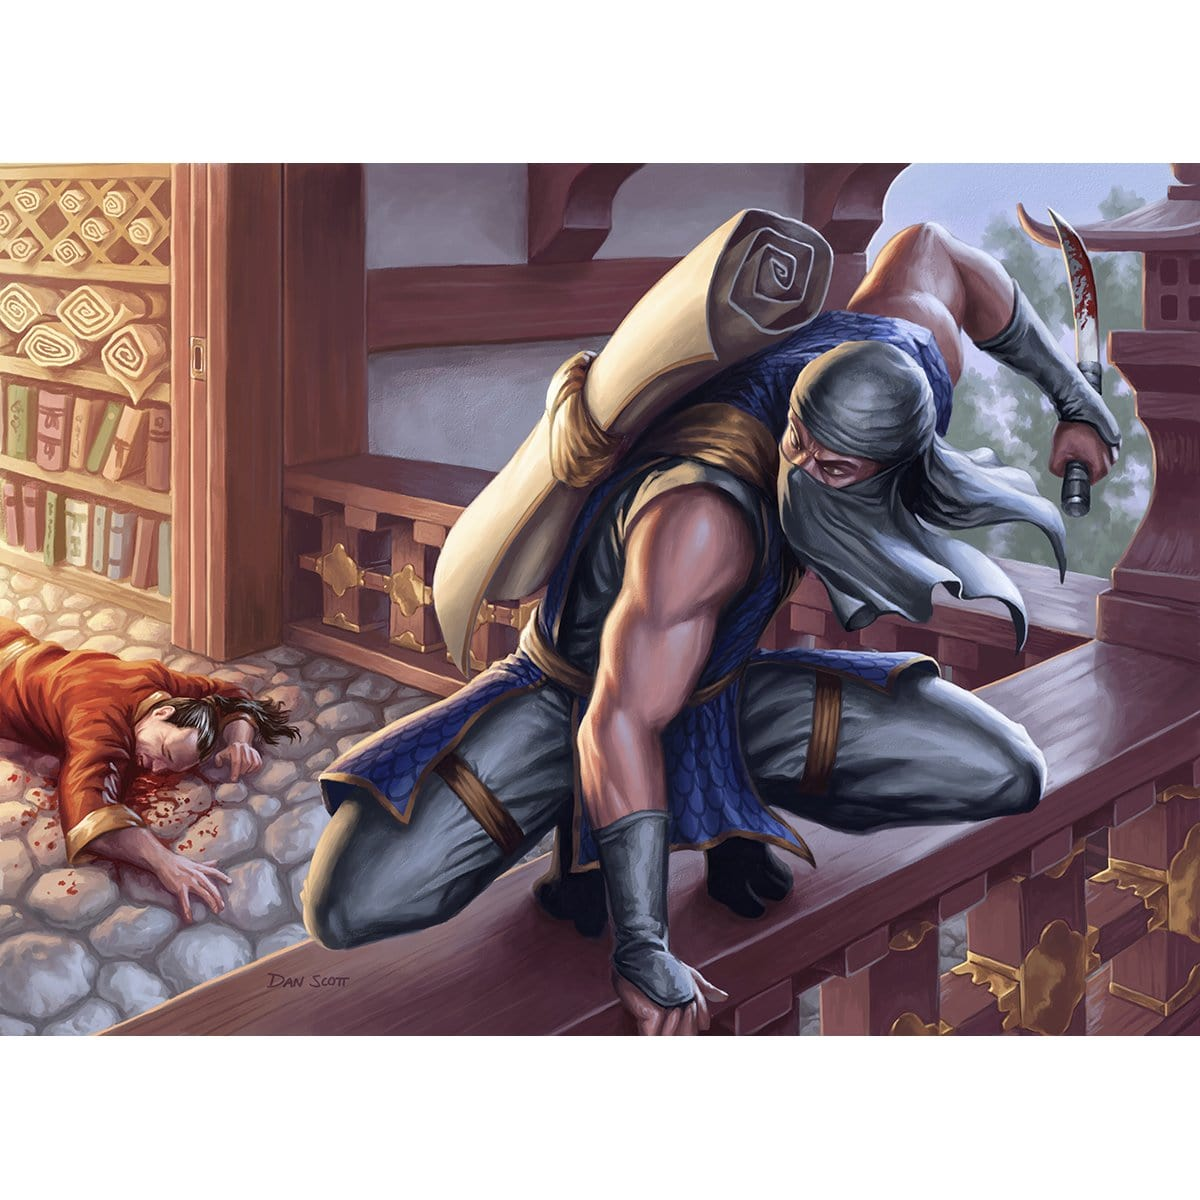 Ninja of the Deep Hours Print - Print - Original Magic Art - Accessories for Magic the Gathering and other card games